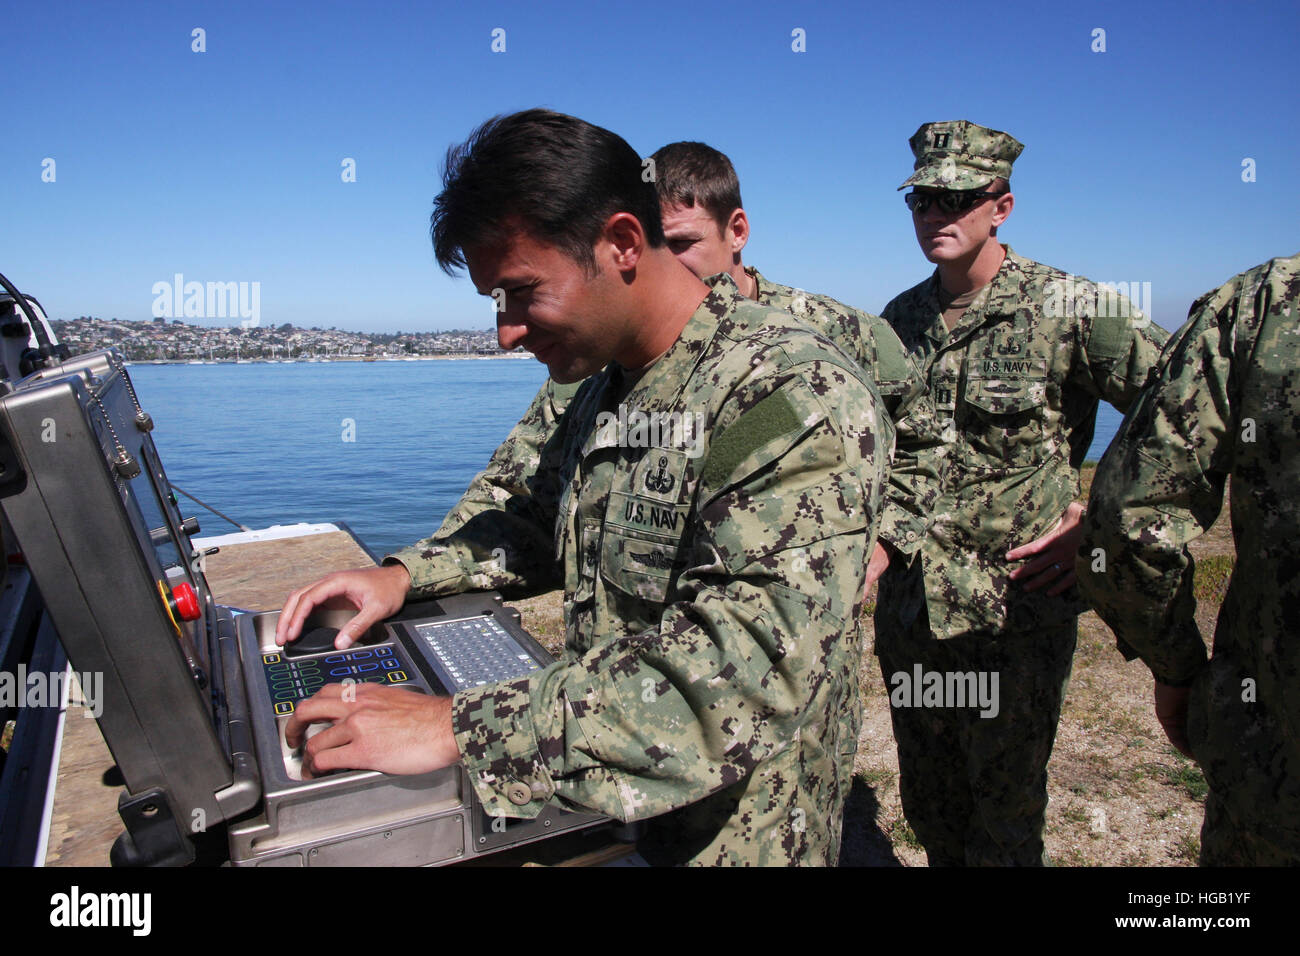 EOD members operate a remote controlled robot from computer system. - Stock Image